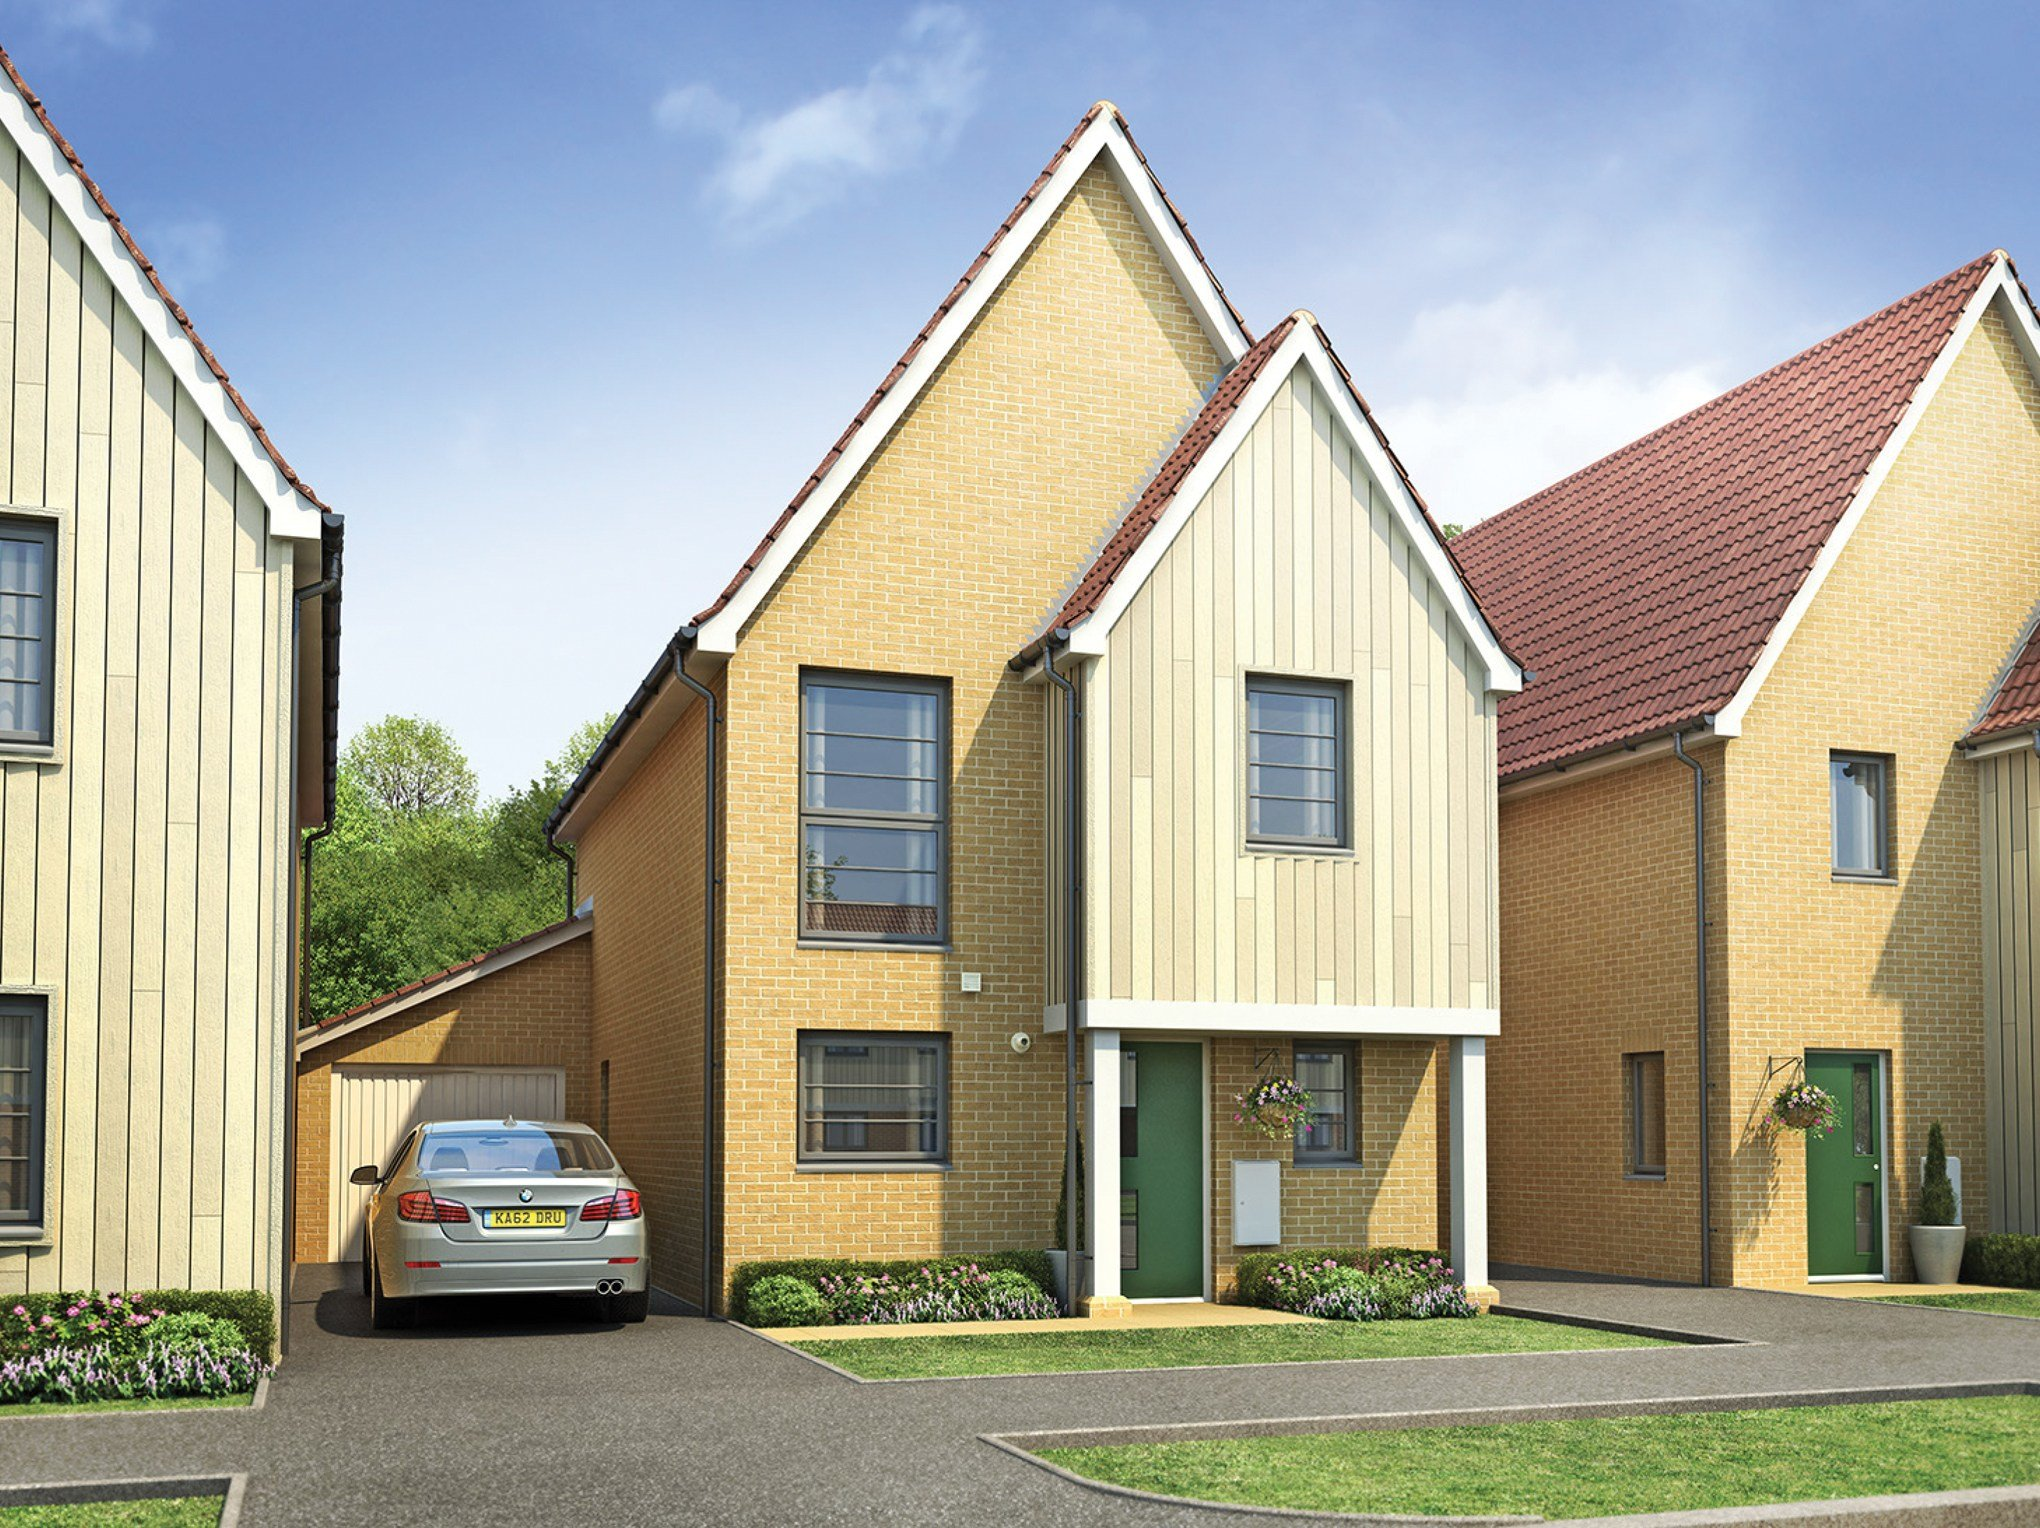 Best Houses For Sale In Colchester Essex Co3 8Ab With Pictures